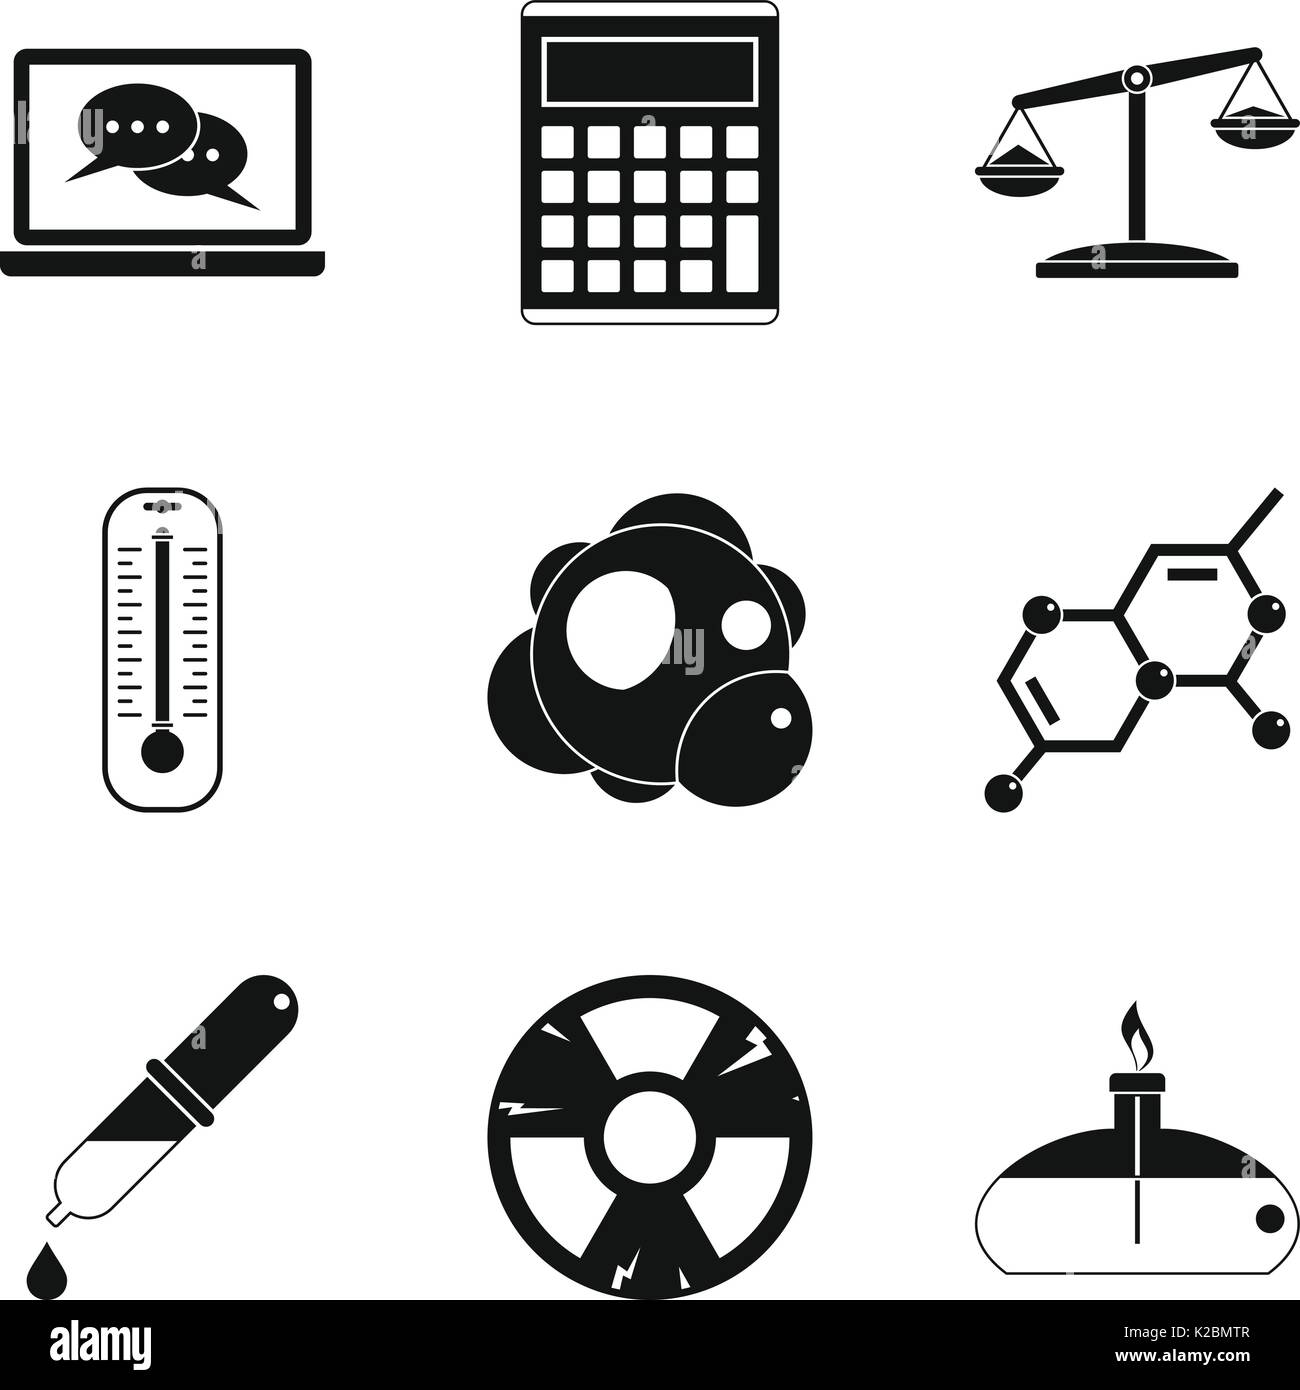 Calculator icons set, simple style - Stock Image